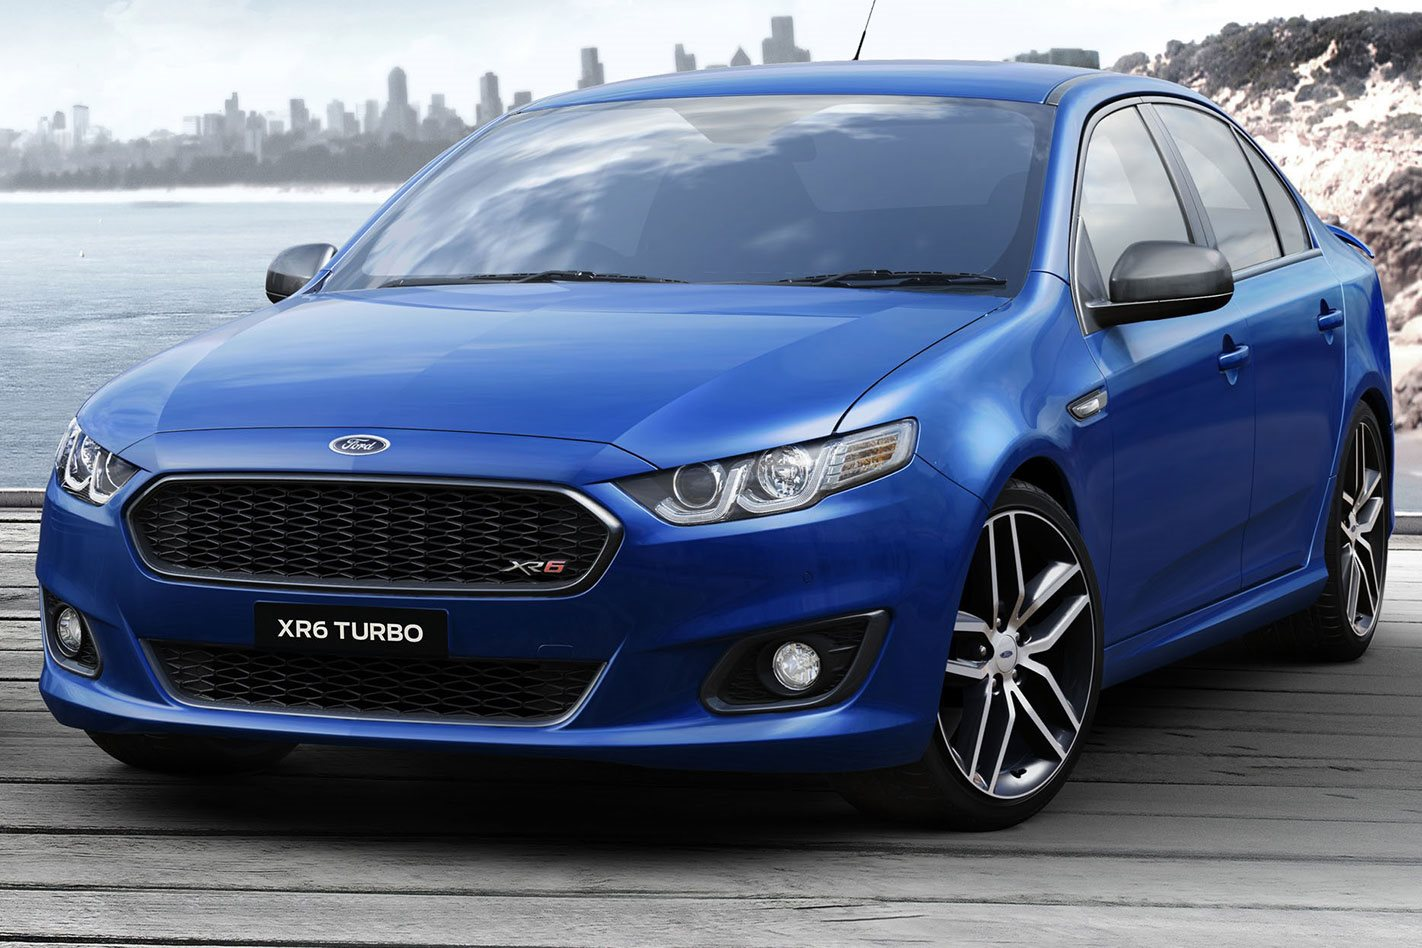 2015 Ford Falcon Xr6t Review Wheels